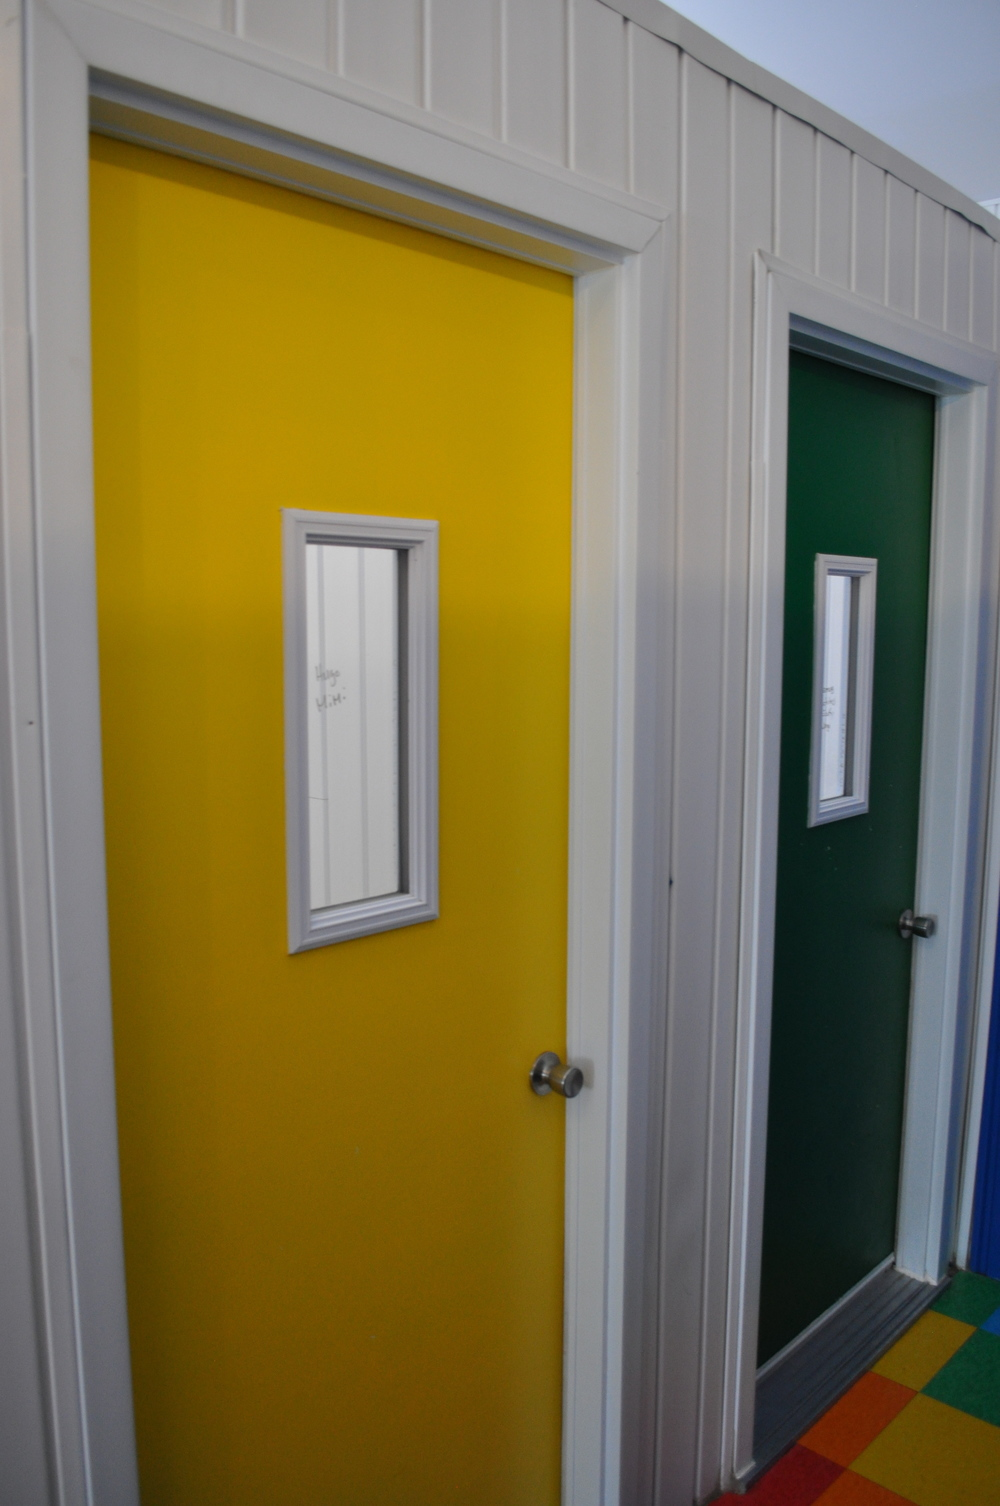 Yellow & Green Dorm Rooms